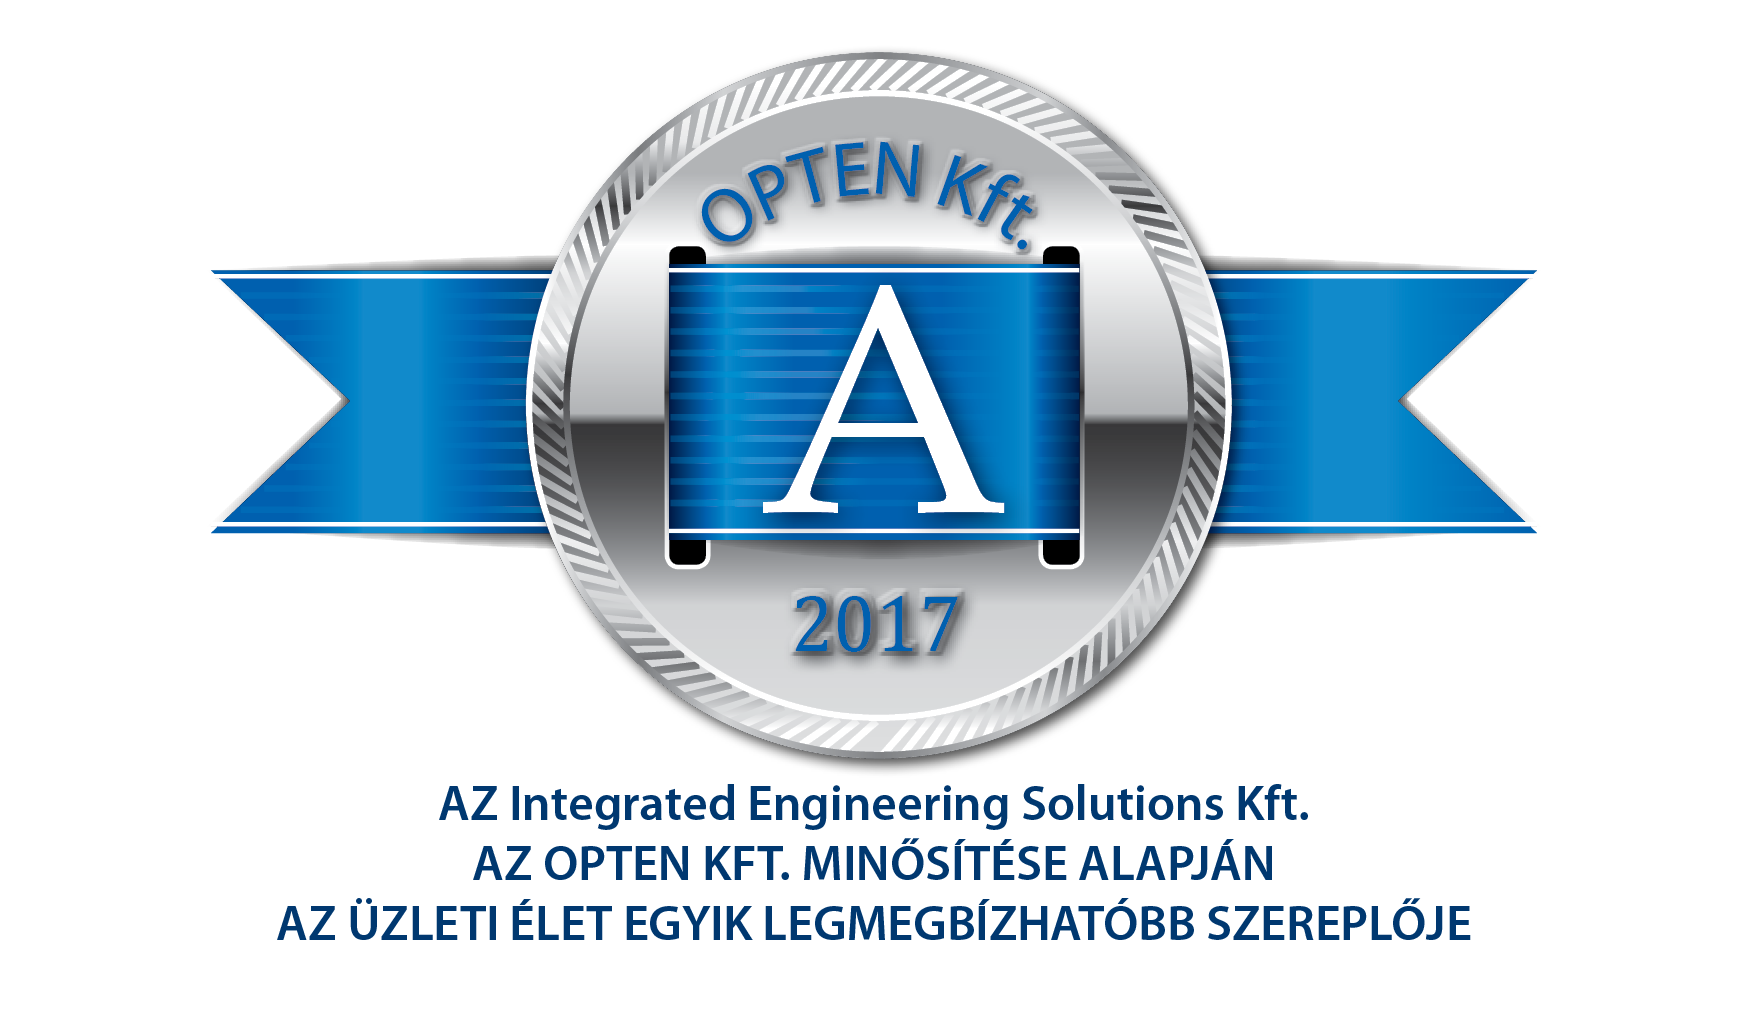 integrated engineering solutions kft